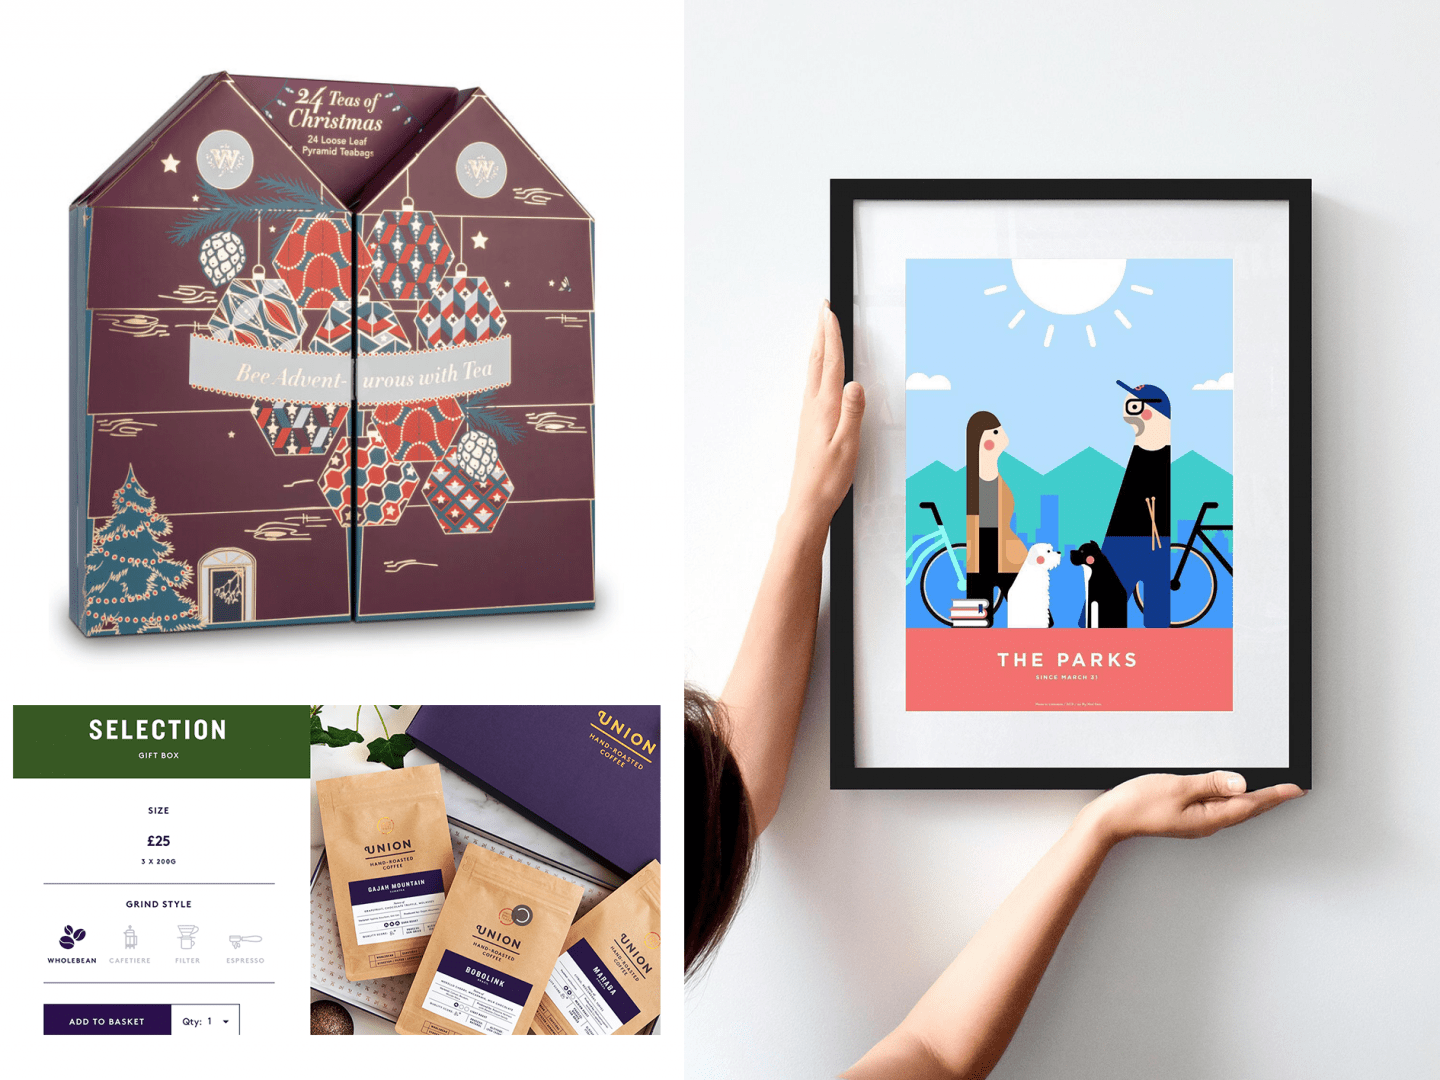 Christmas Gifts For Those Who Have Everything | Hollie in Wanderlust's 2019 Gift Guide